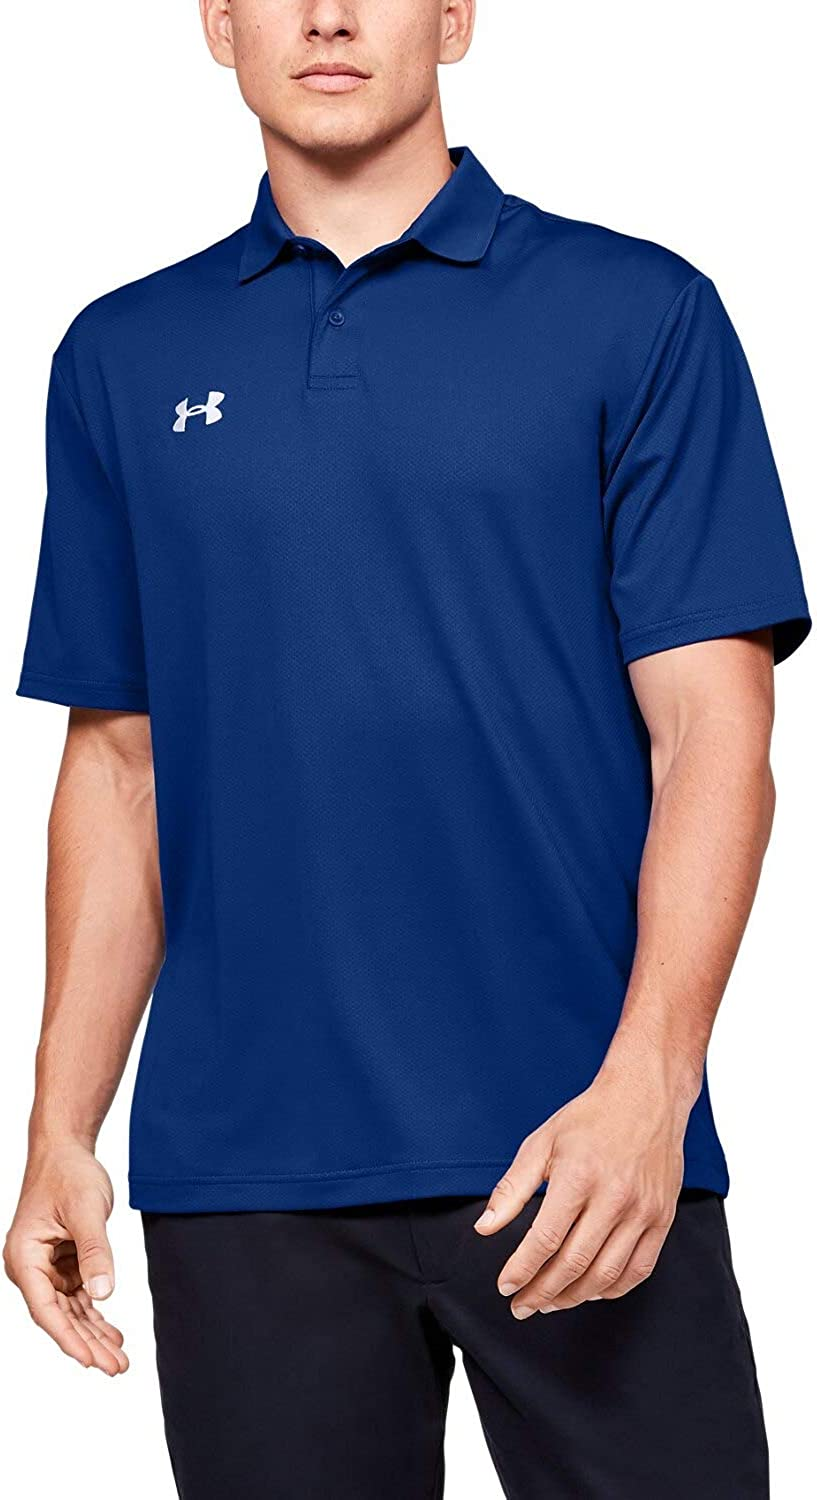 Royal, Large Under Armour Mens Team Performance Polo